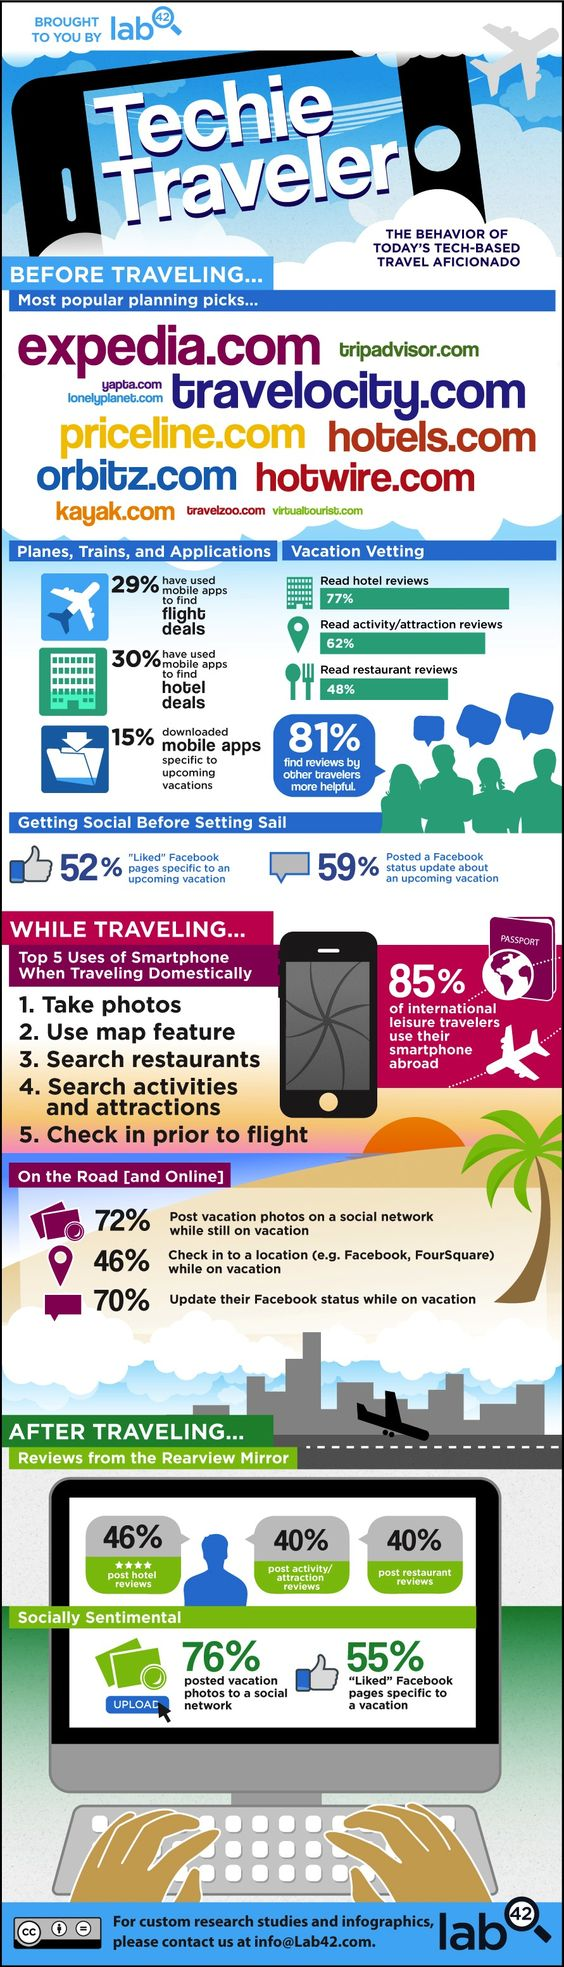 [how tech is changing travel]:  Internet Site, Techie Traveller,  Website, Travel Infographic, Social Media, Techie Traveler, Media Infographic, Traveler Infographic, Tourism Marketing